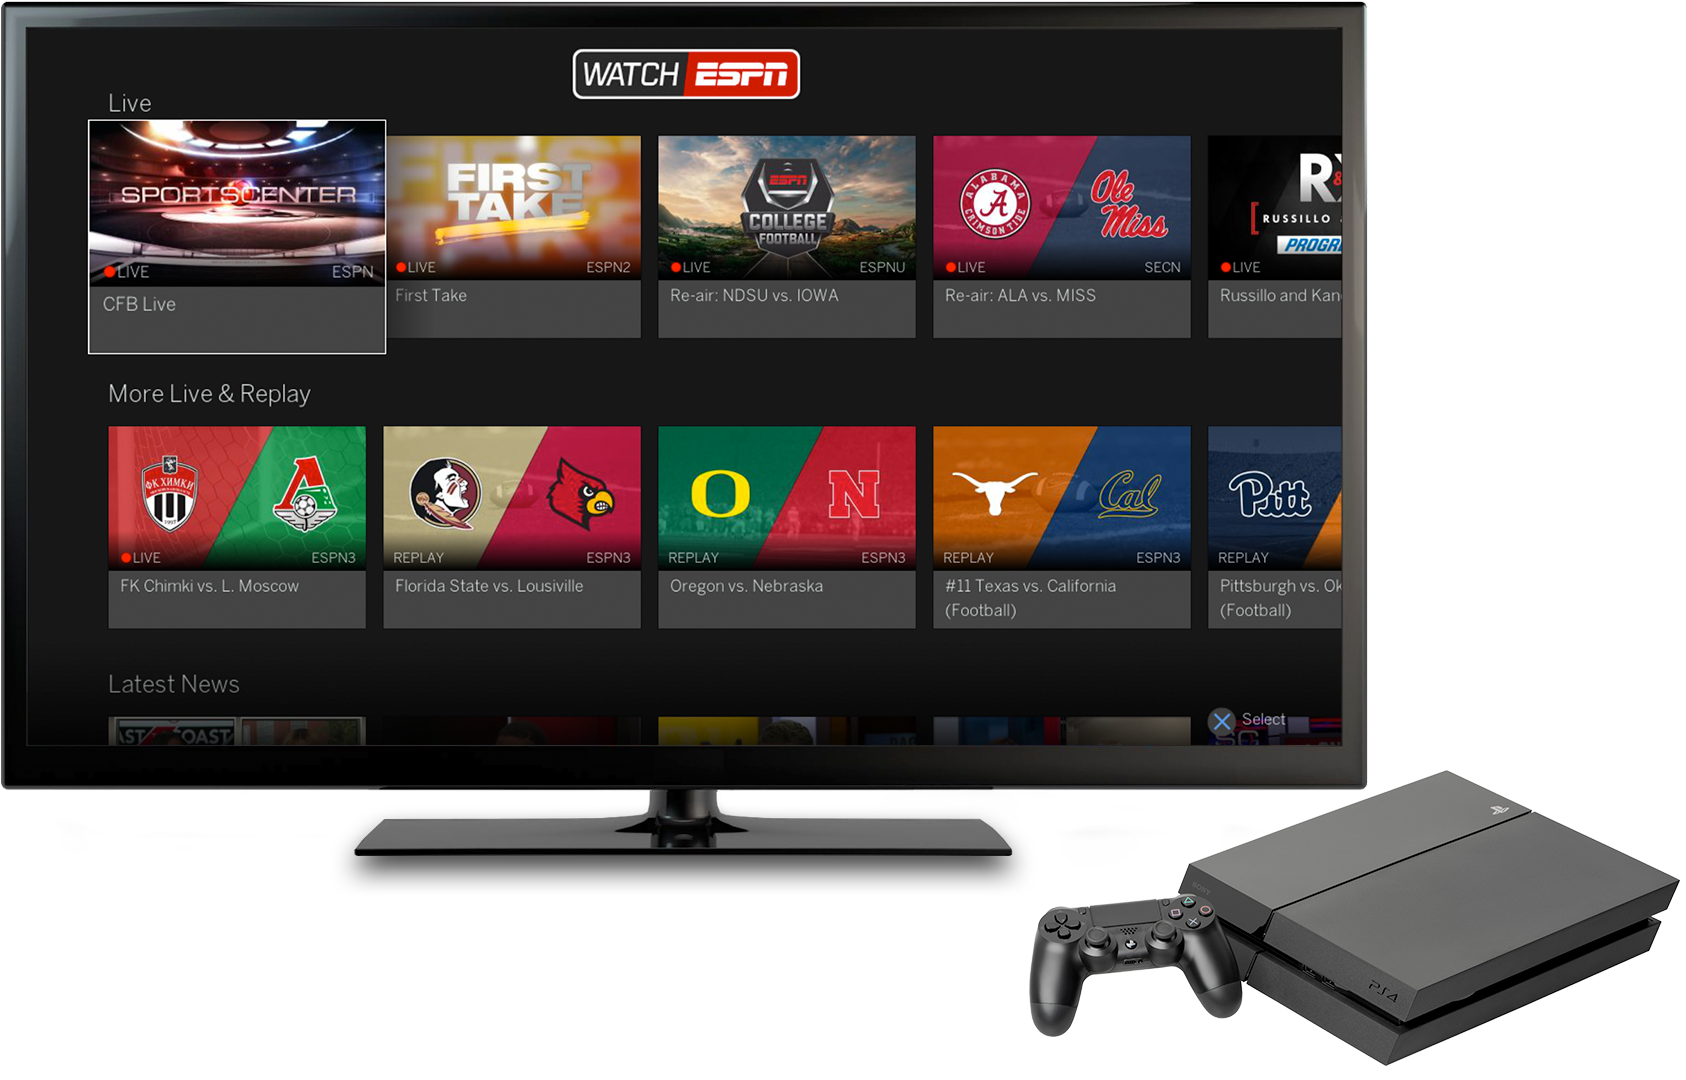 watch espn samsung smart tv